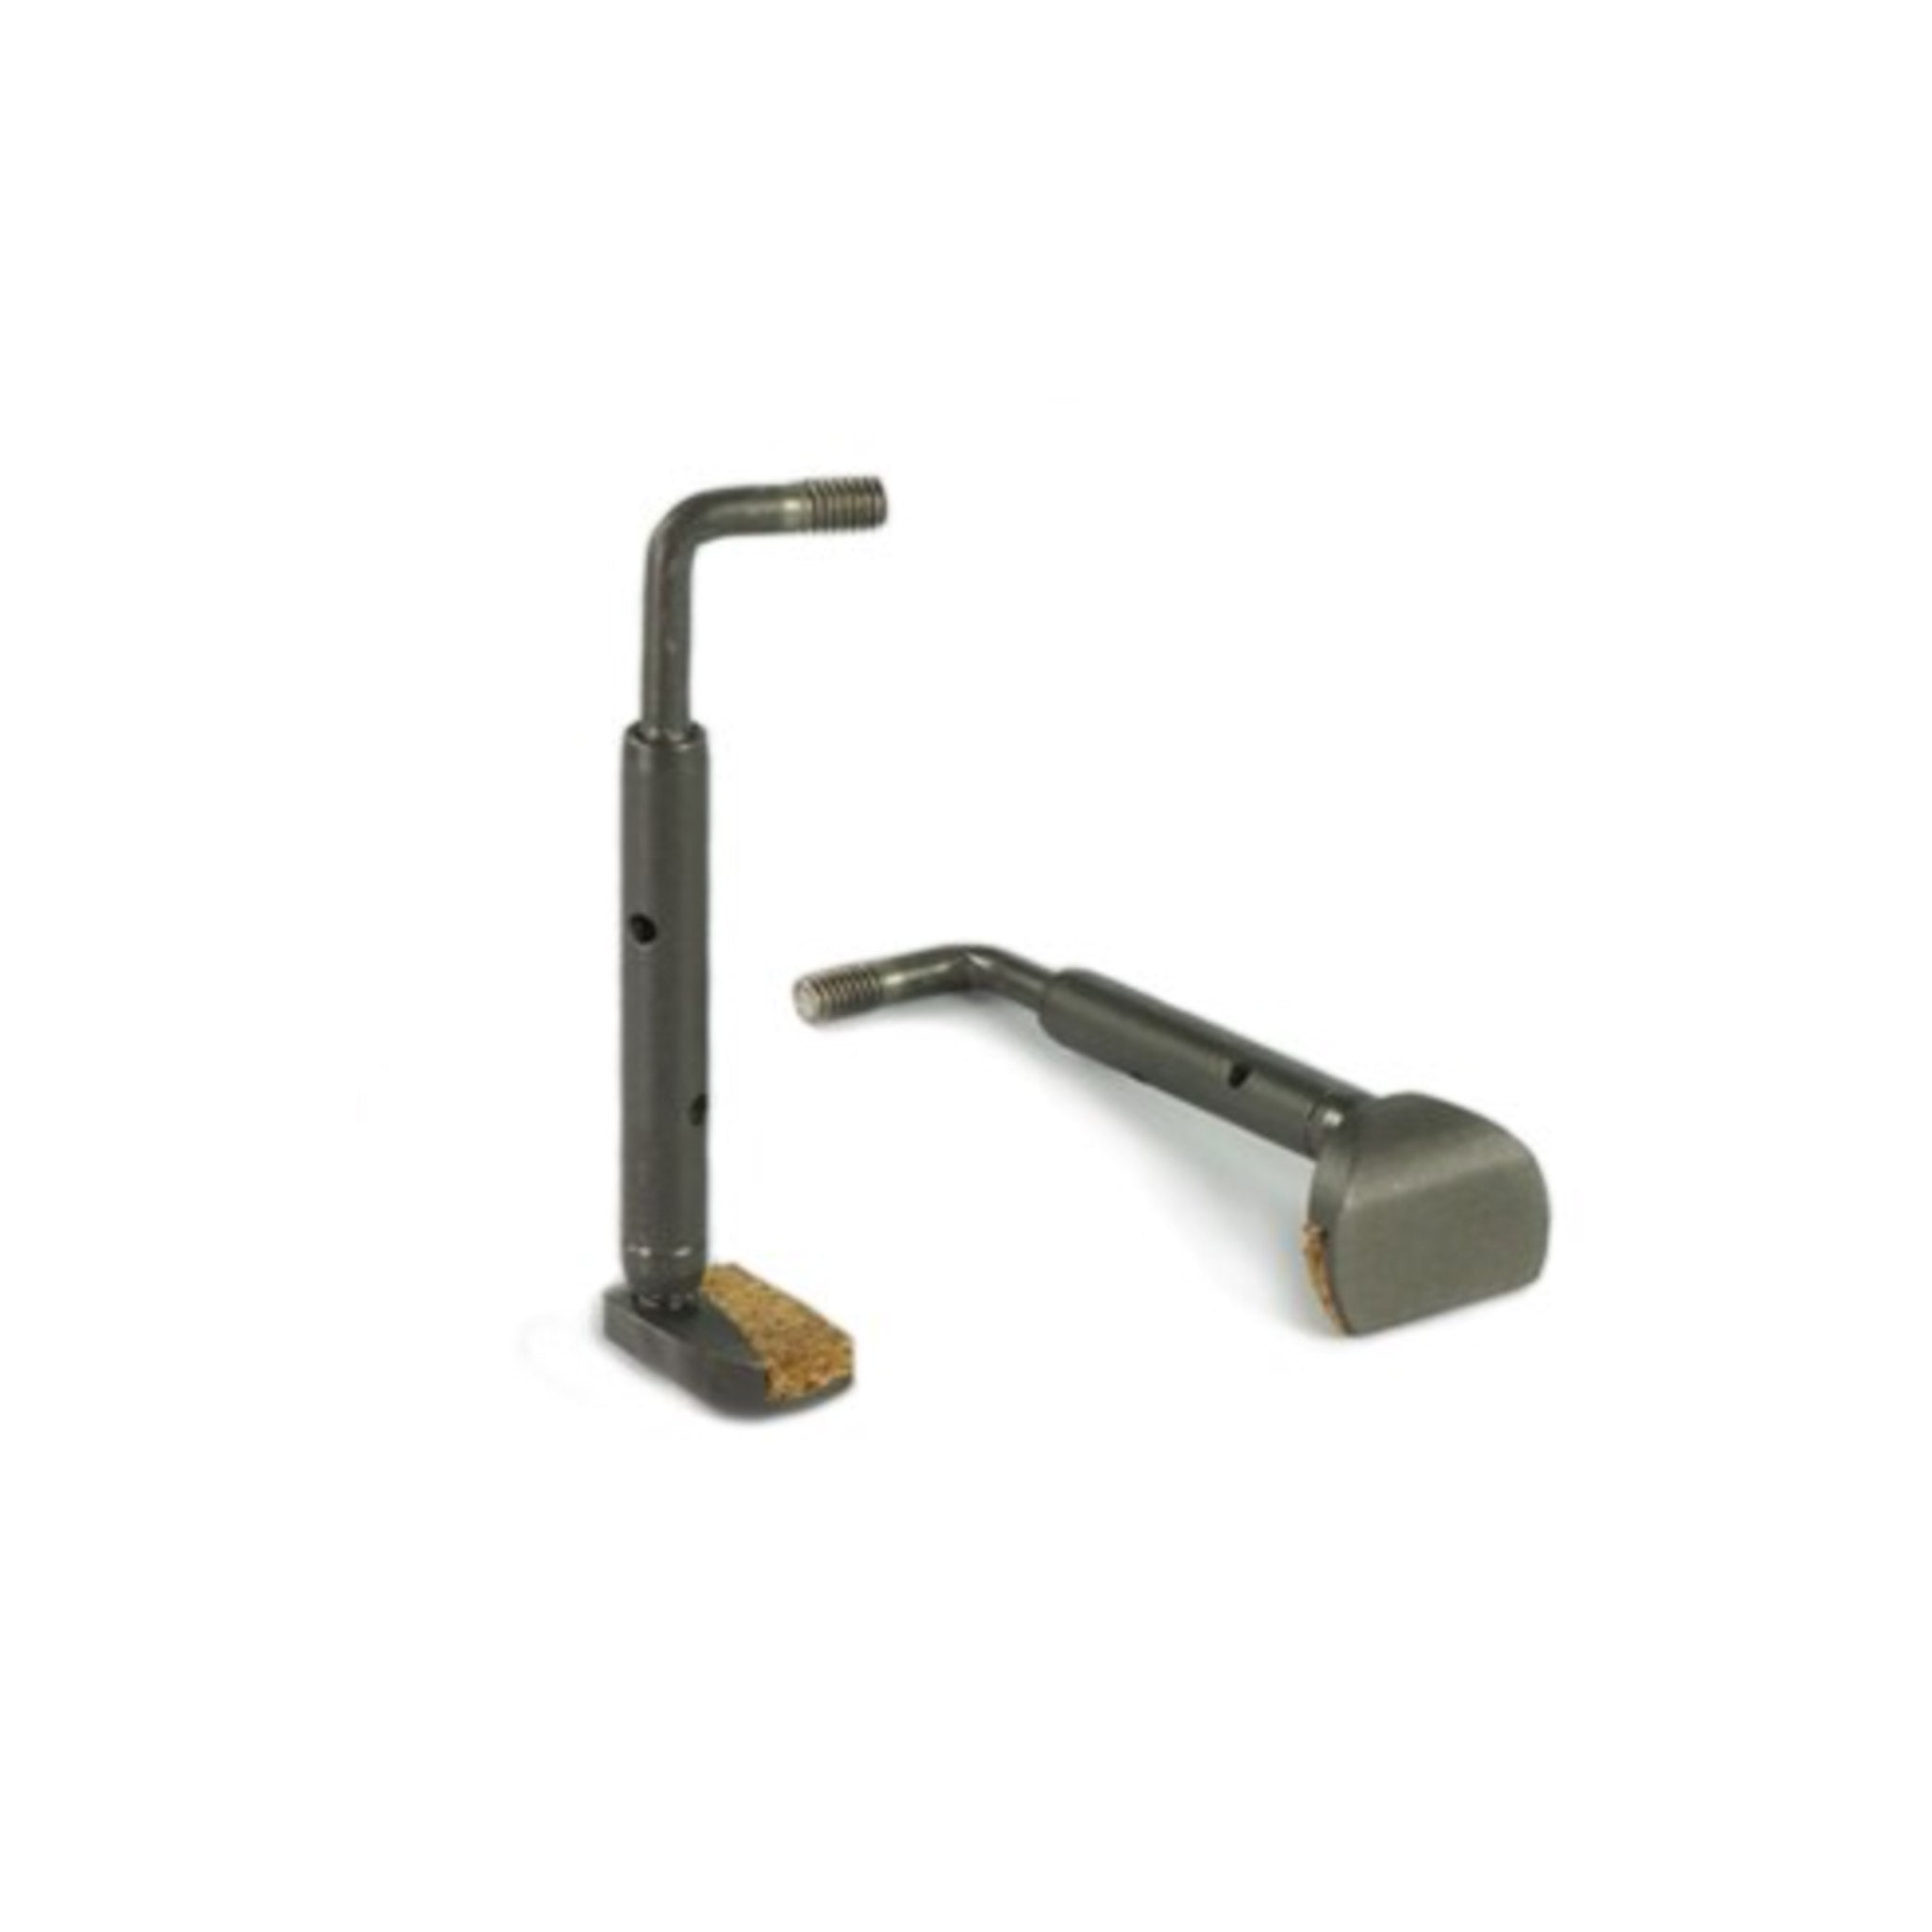 Titanium Hook Hardware Replacement for Chinrest - Universal Separated Leg Design